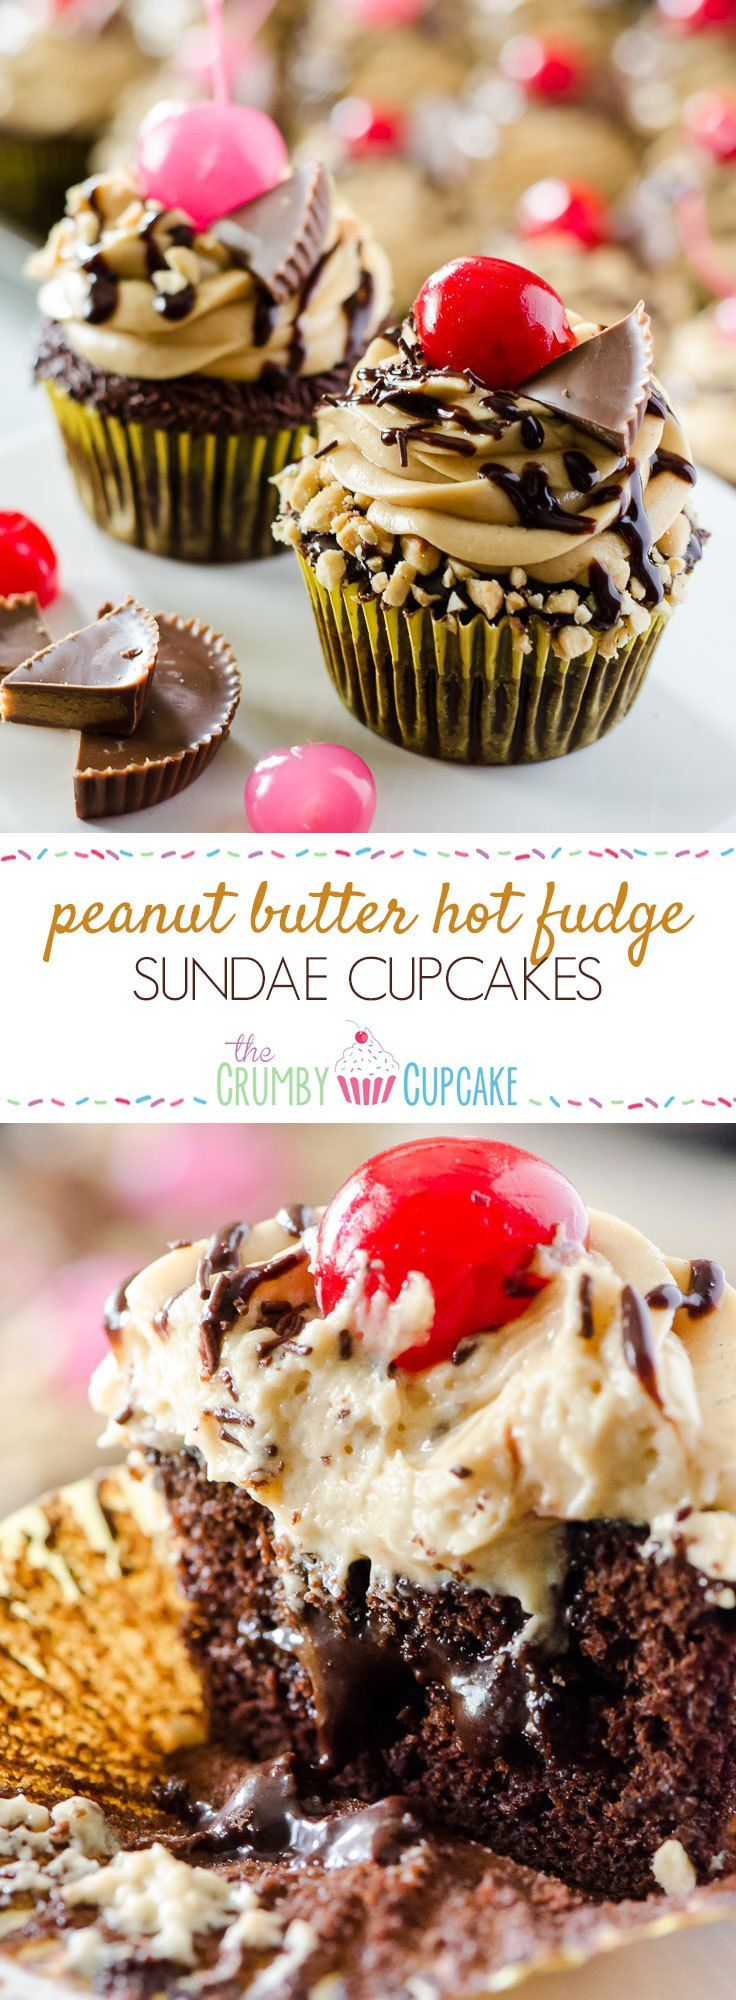 10+ images about Cupcake Recipes on Pinterest | Vanilla ...